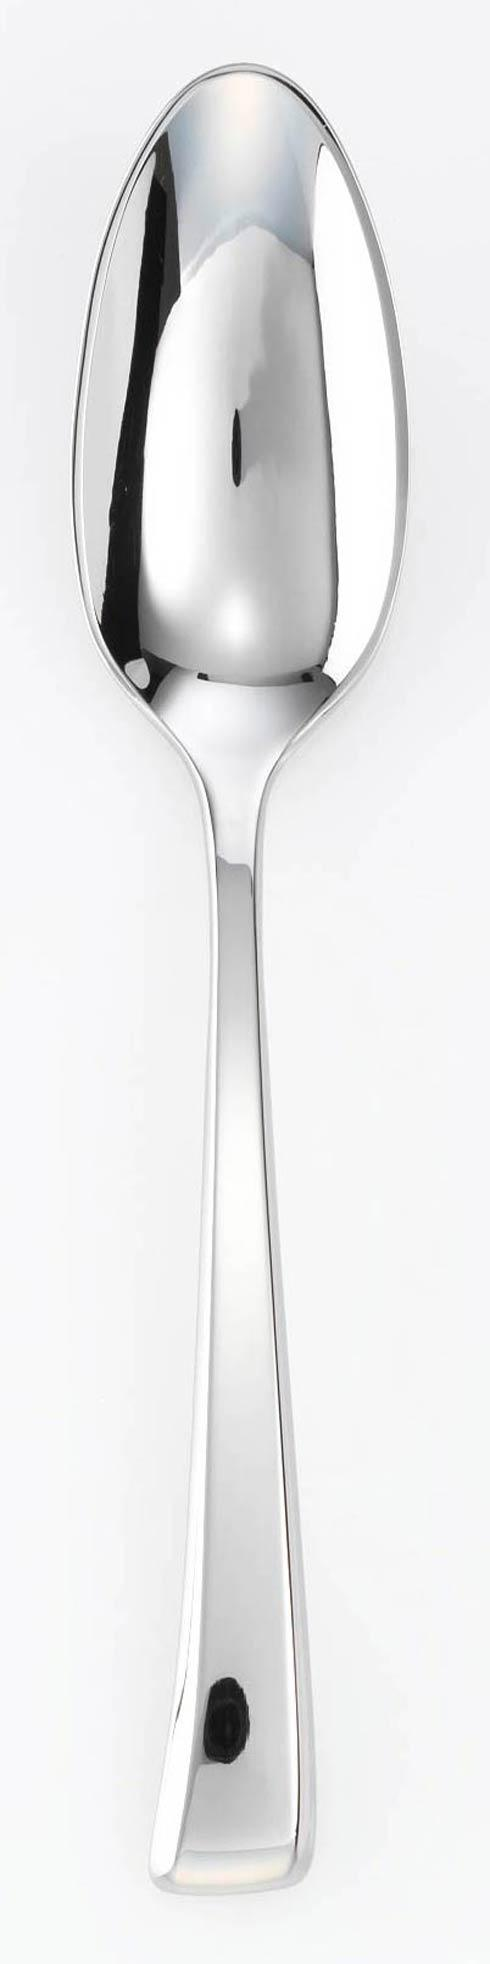 $22.00 Table Spoon